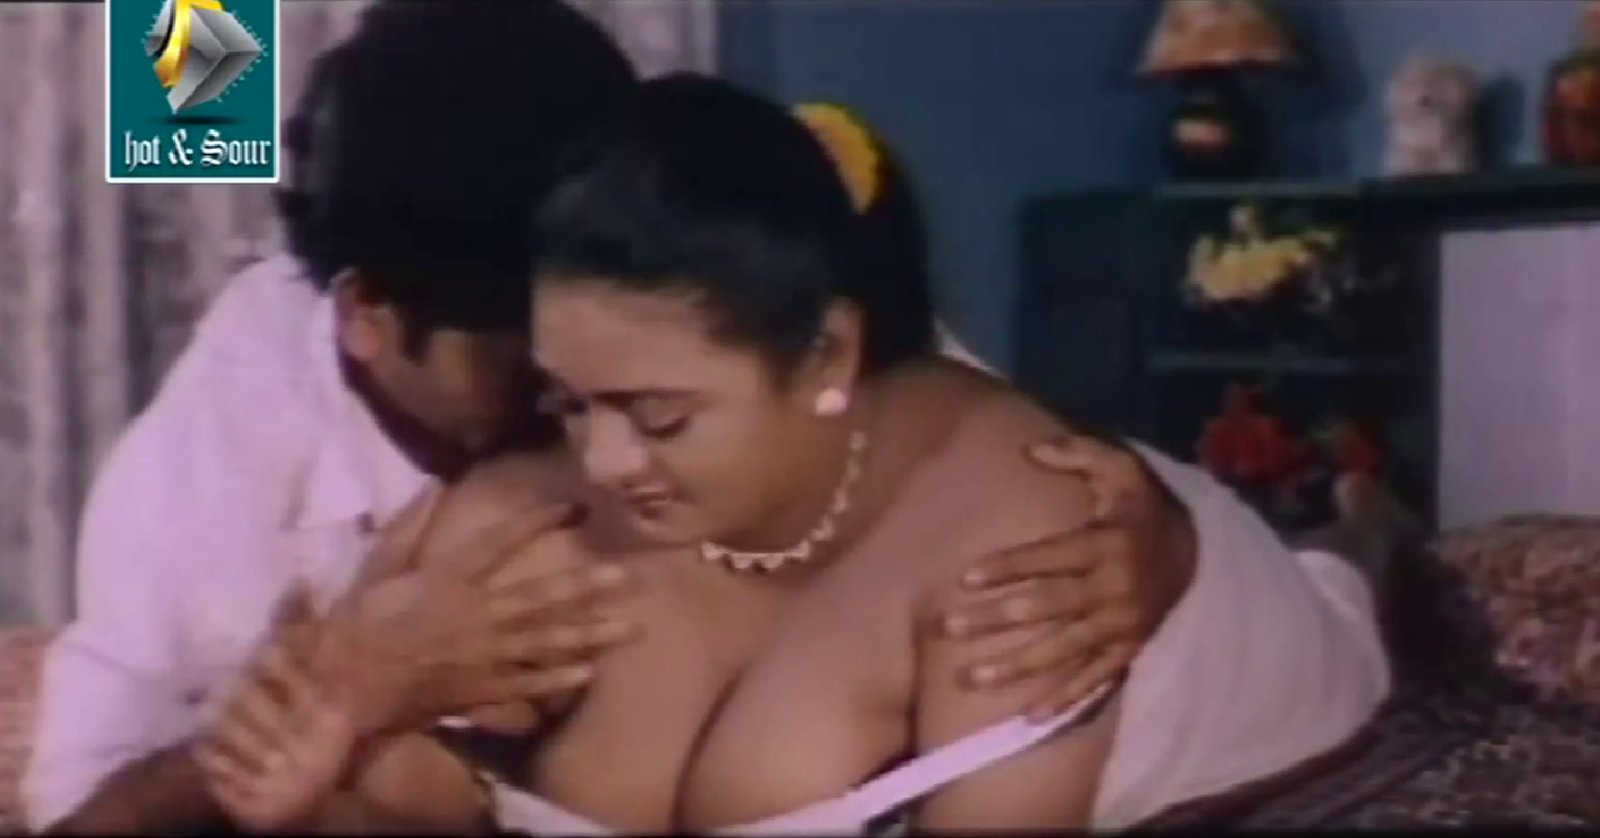 shakila sex images videos